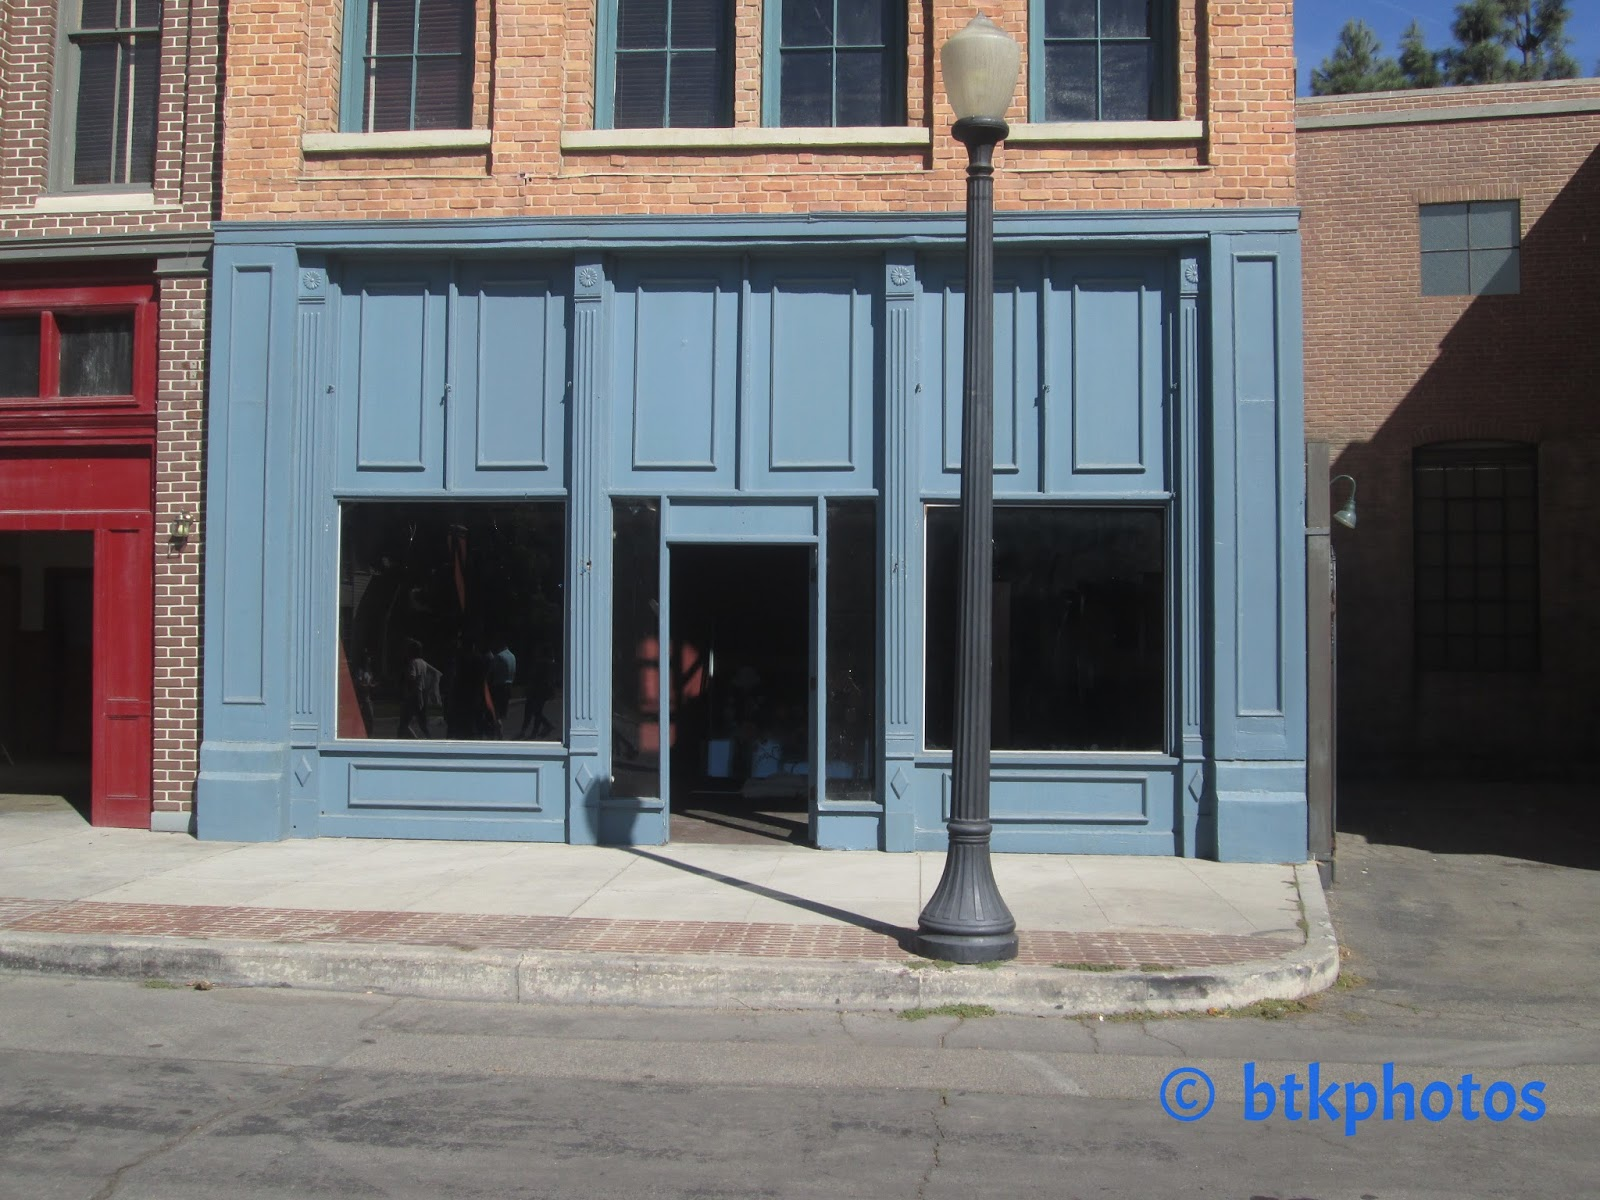 Filming Locations of Chicago and Los Angeles: Naked Gun 2 1/2